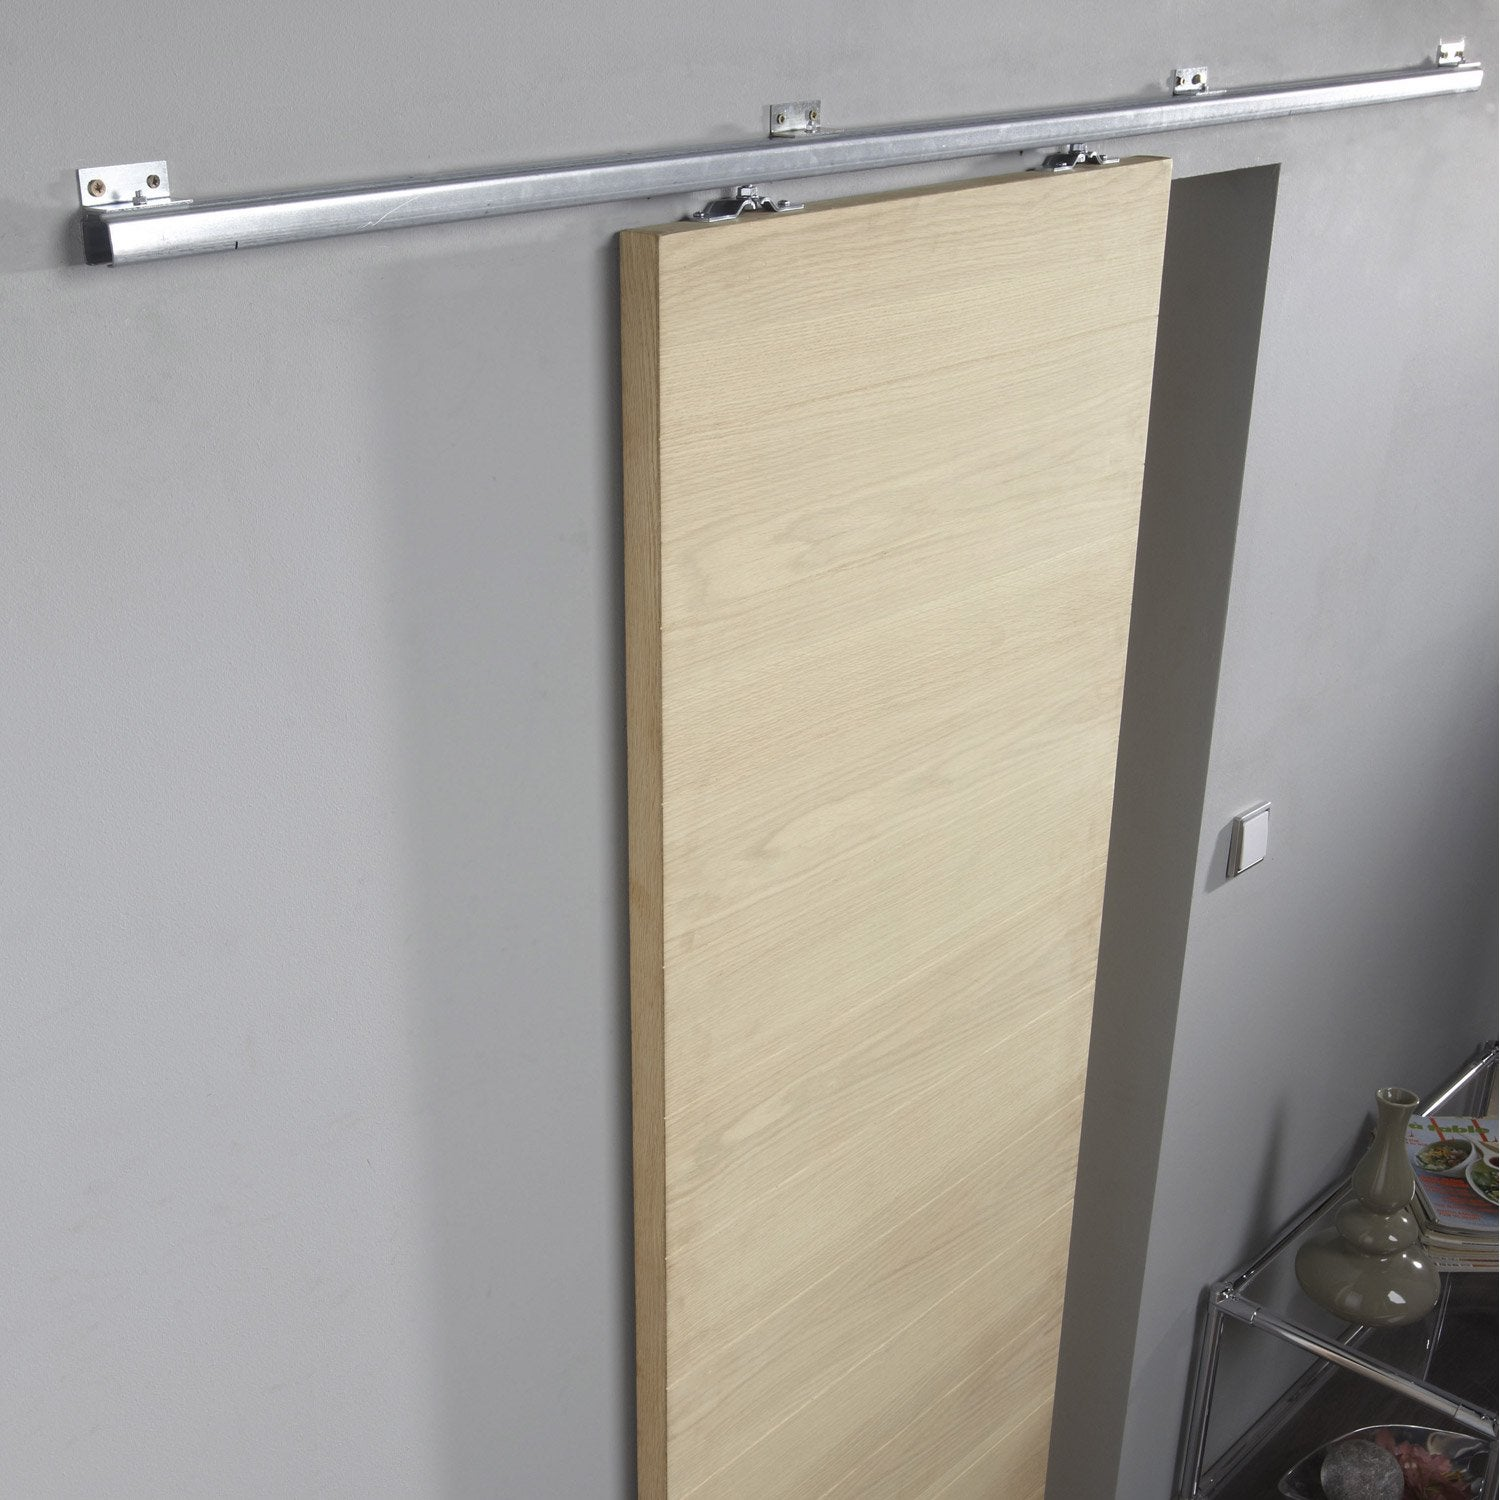 Rail coulissant tango artens pour porte de largeur 93 cm for Porte 60 cm de large